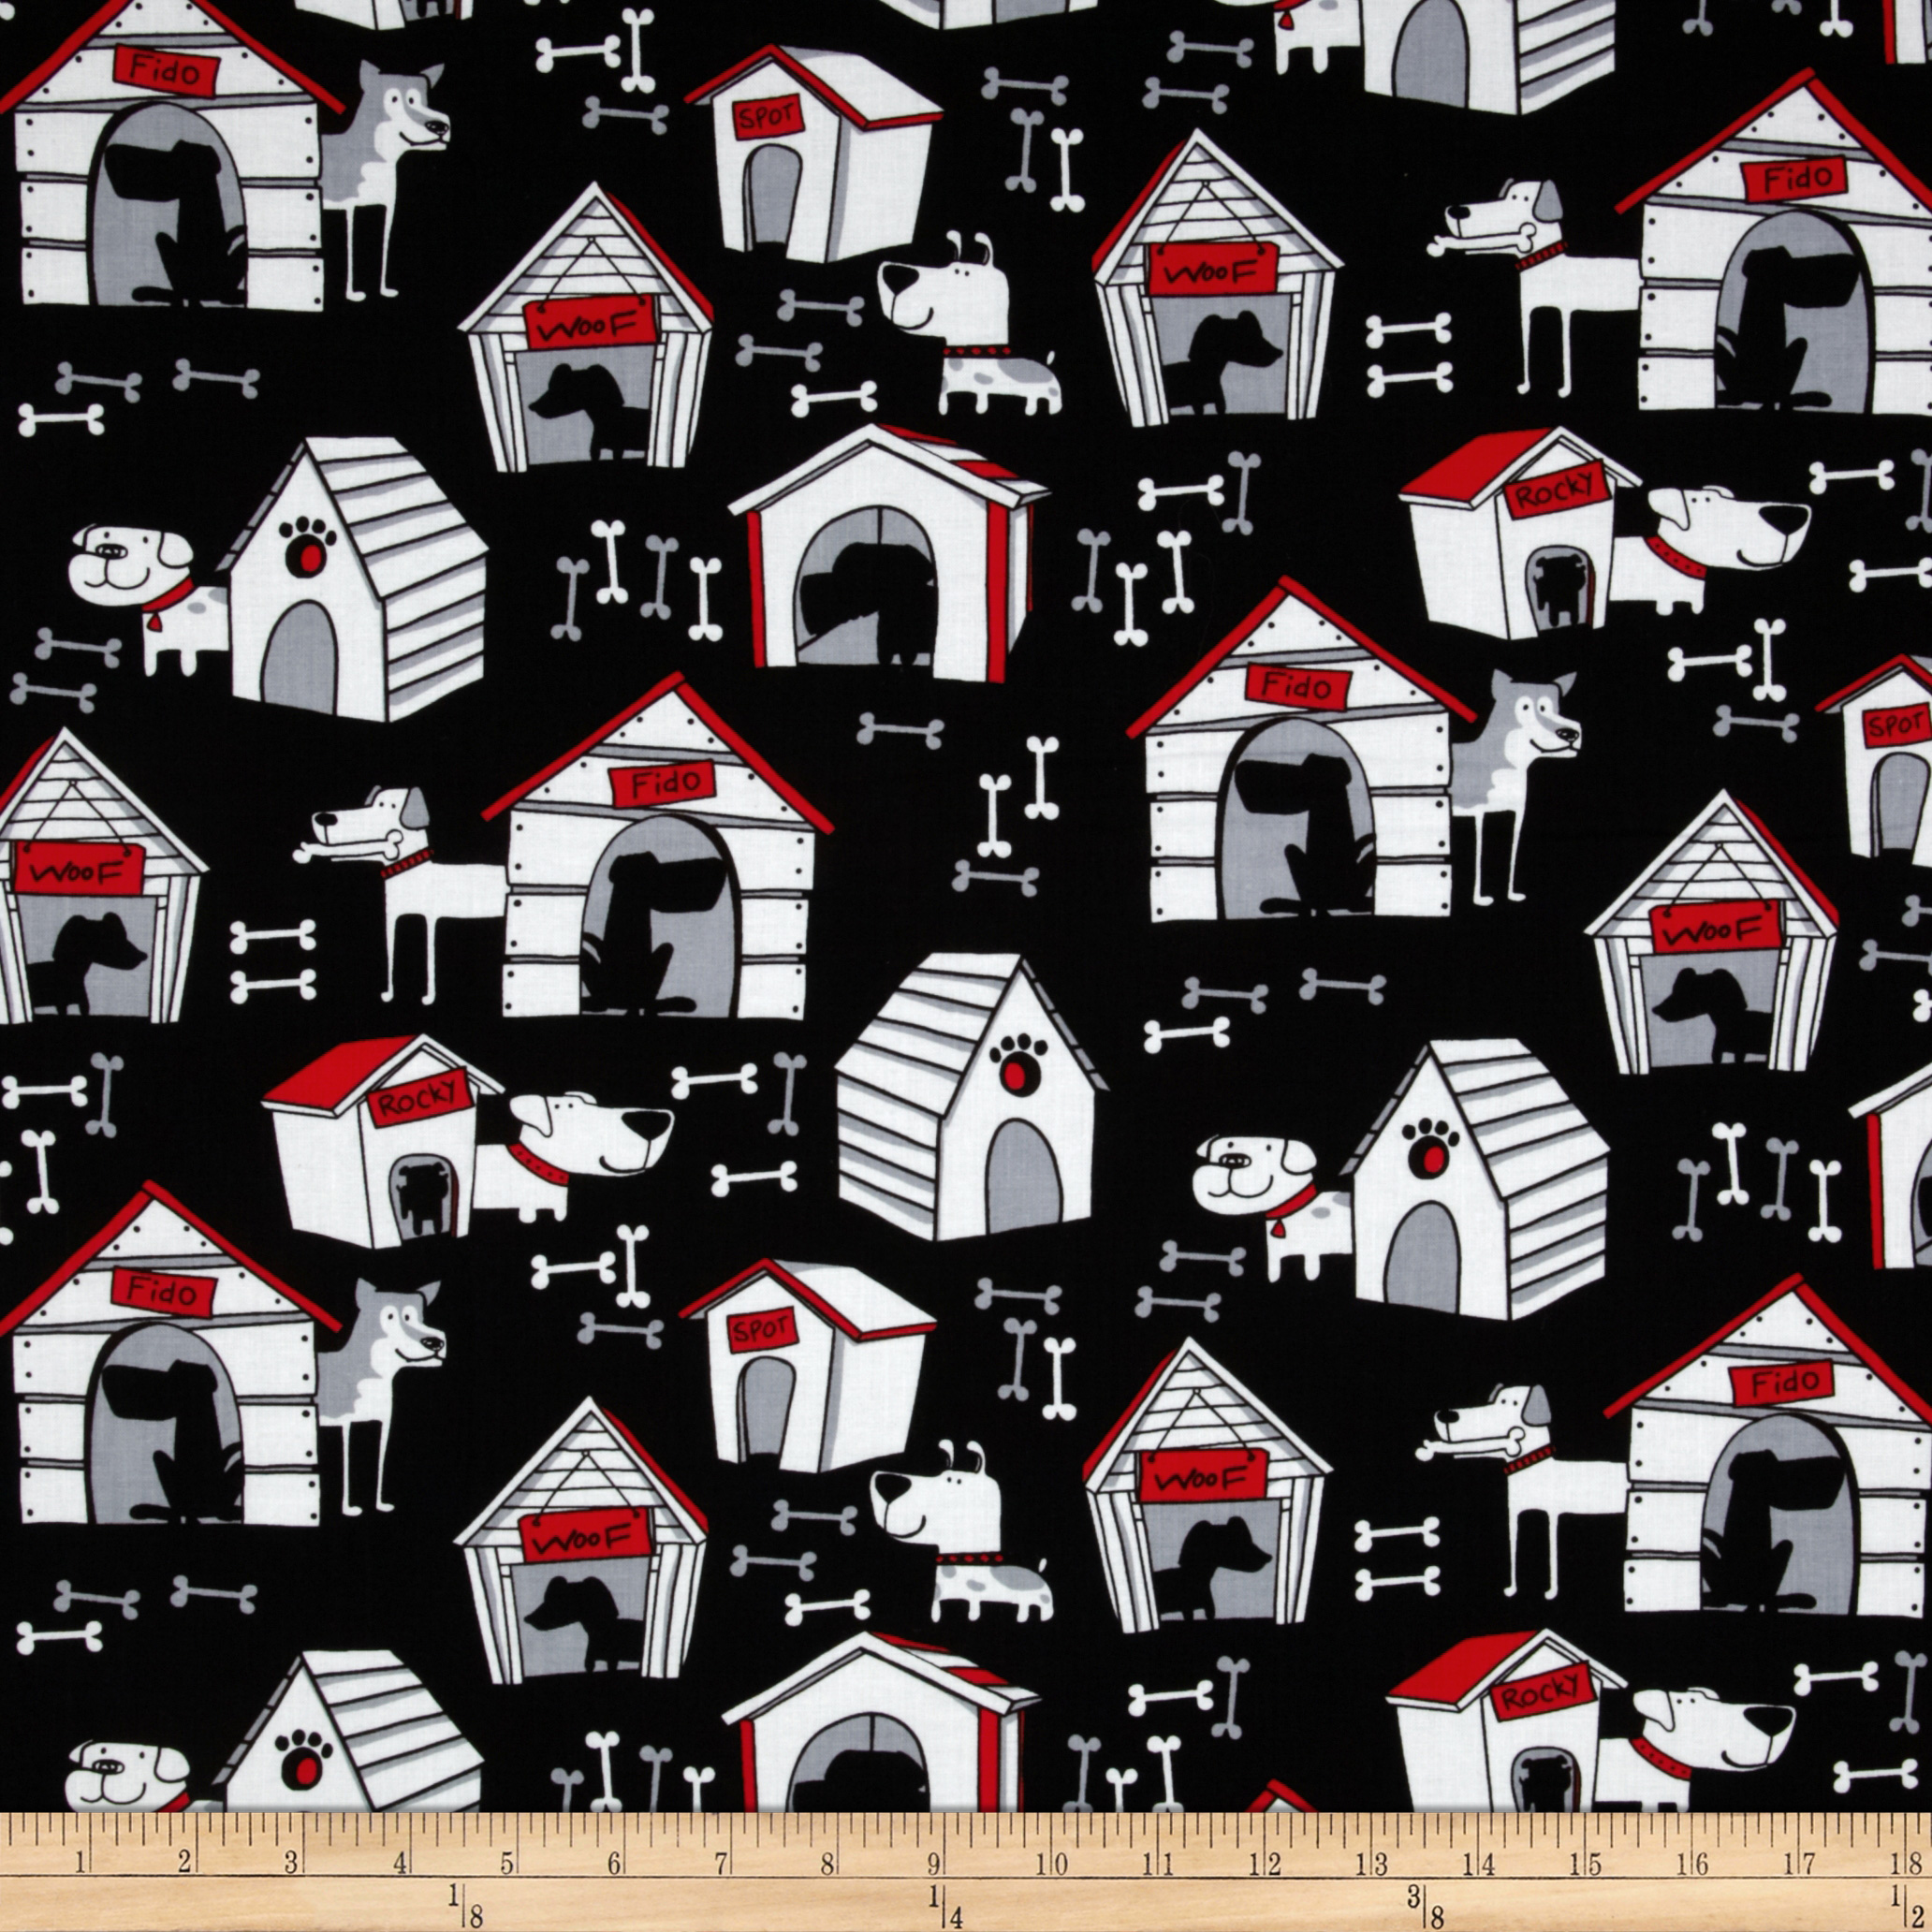 Kanvas Yard Dog Black Fabric